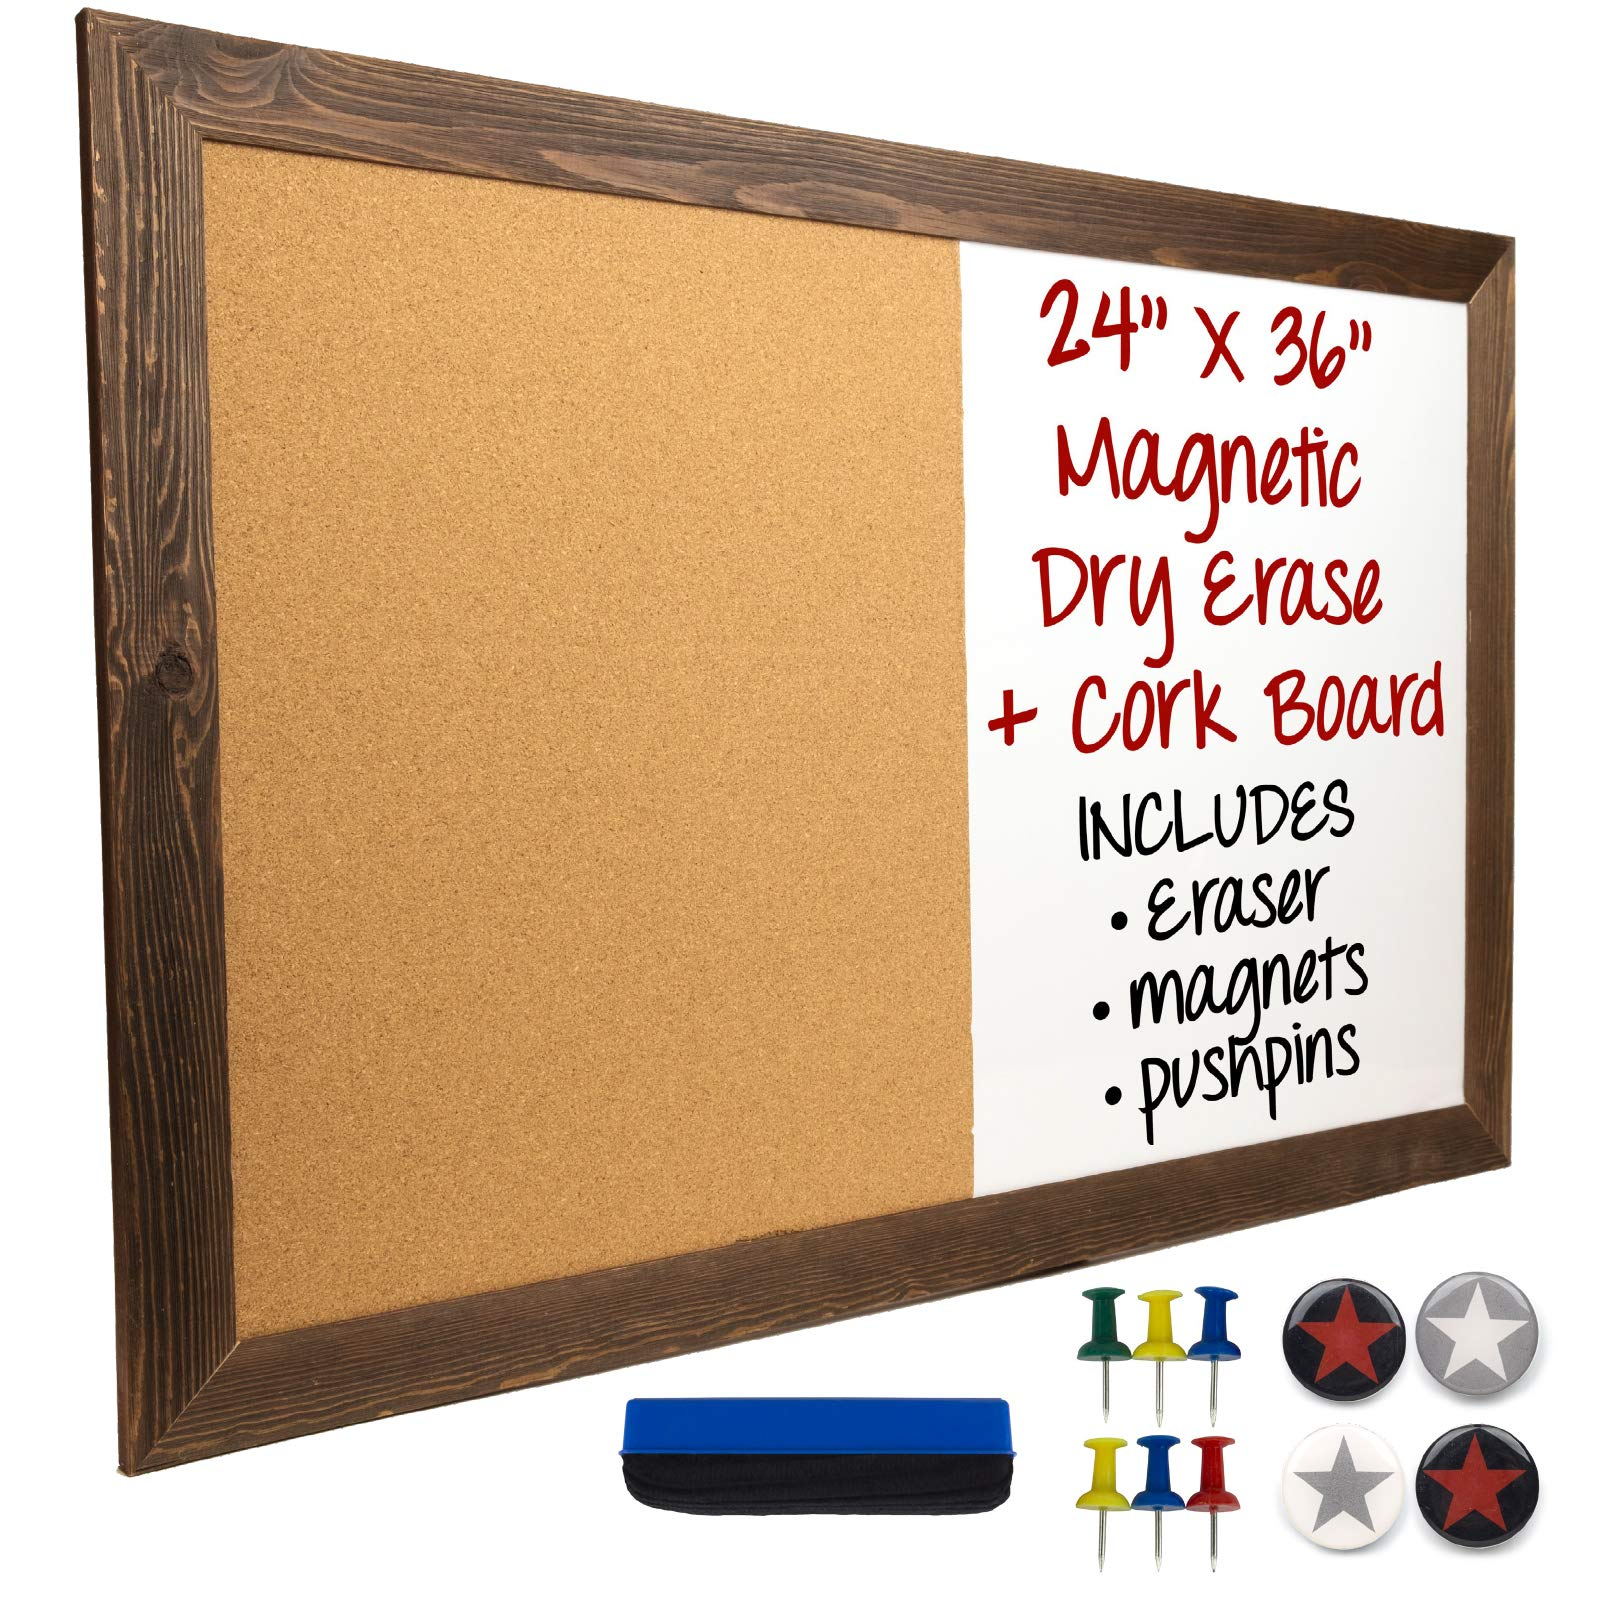 Dry Erase Cork Board Combo: Magnetic White Board with Cork Bulletin & Rustic Wooden Frame for Home, School, Office - 24''x36''